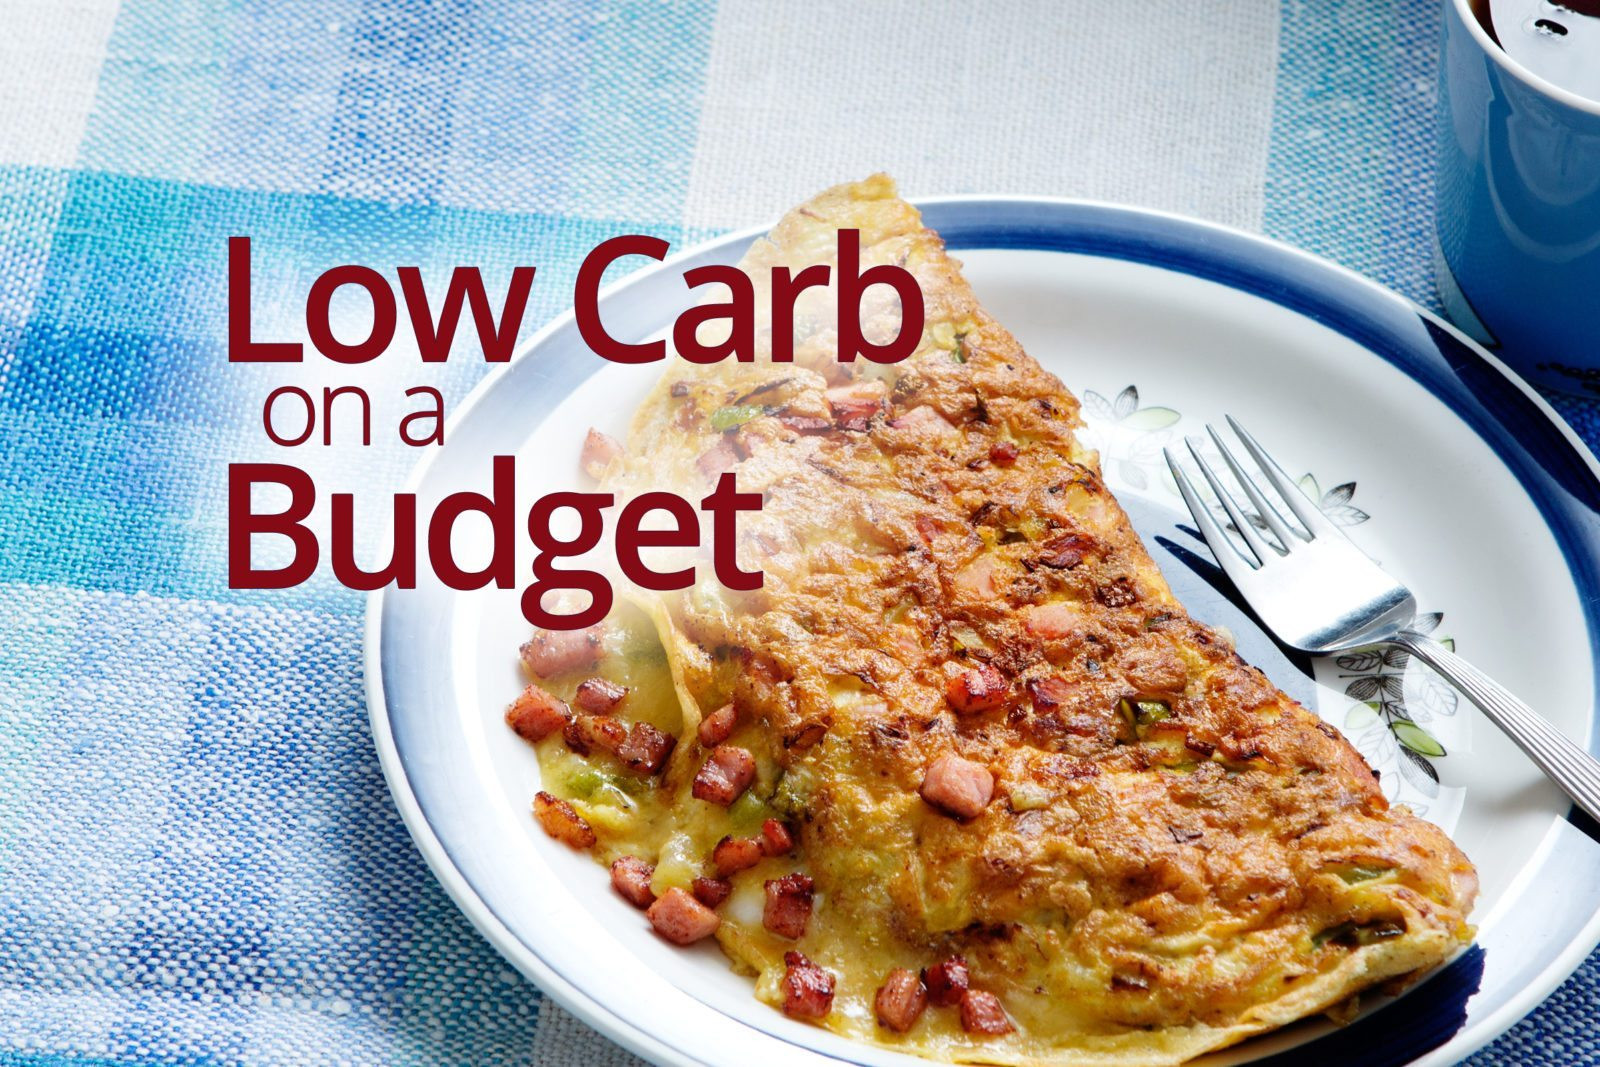 Low Carb Diet Recipes  Low Carb on a Bud Diet Doctor